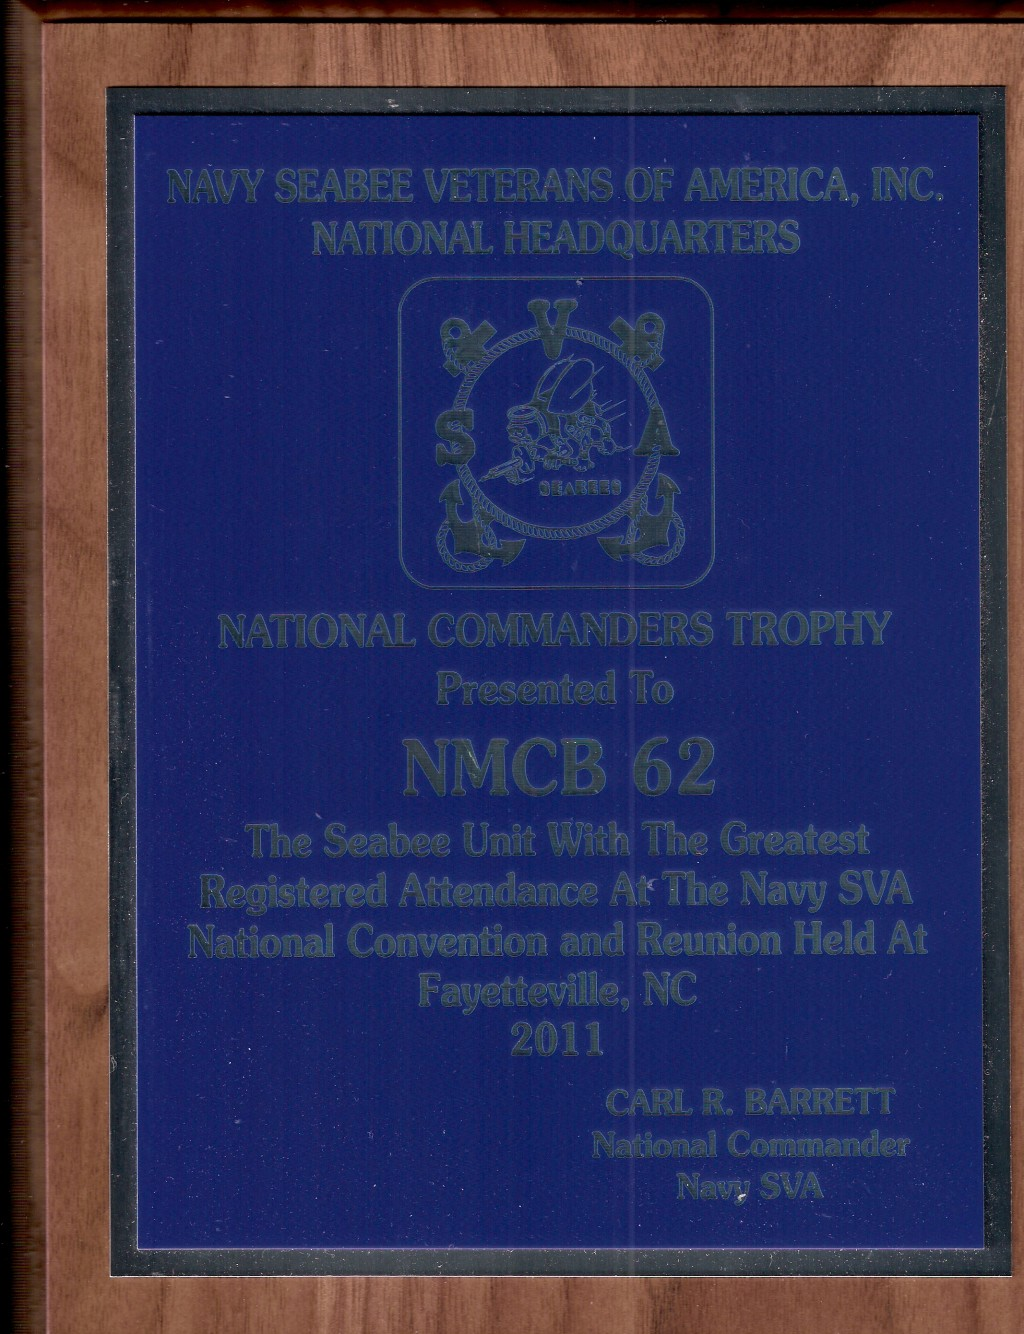 National Commanders Trophy August 2011 National Convention Fayetteville, NC